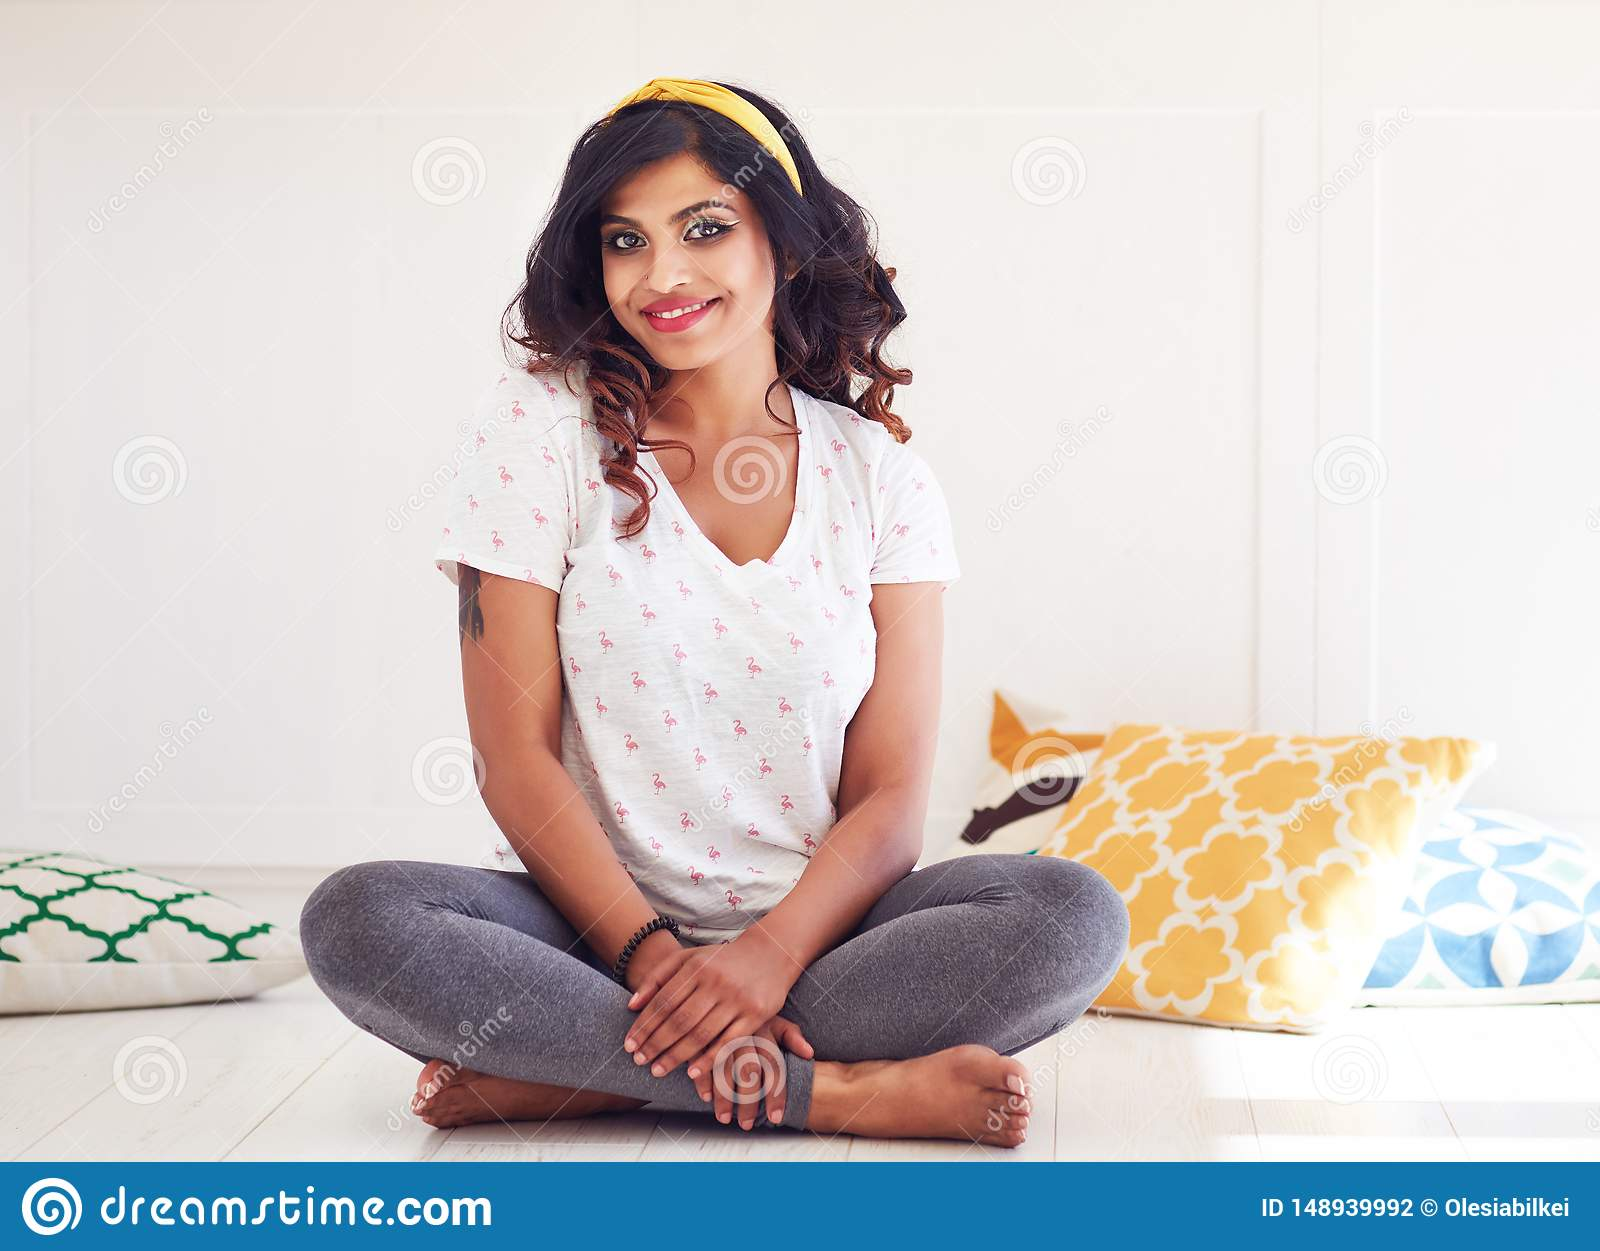 Happy and beautiful young woman sitting on the floor, ready for yoga class